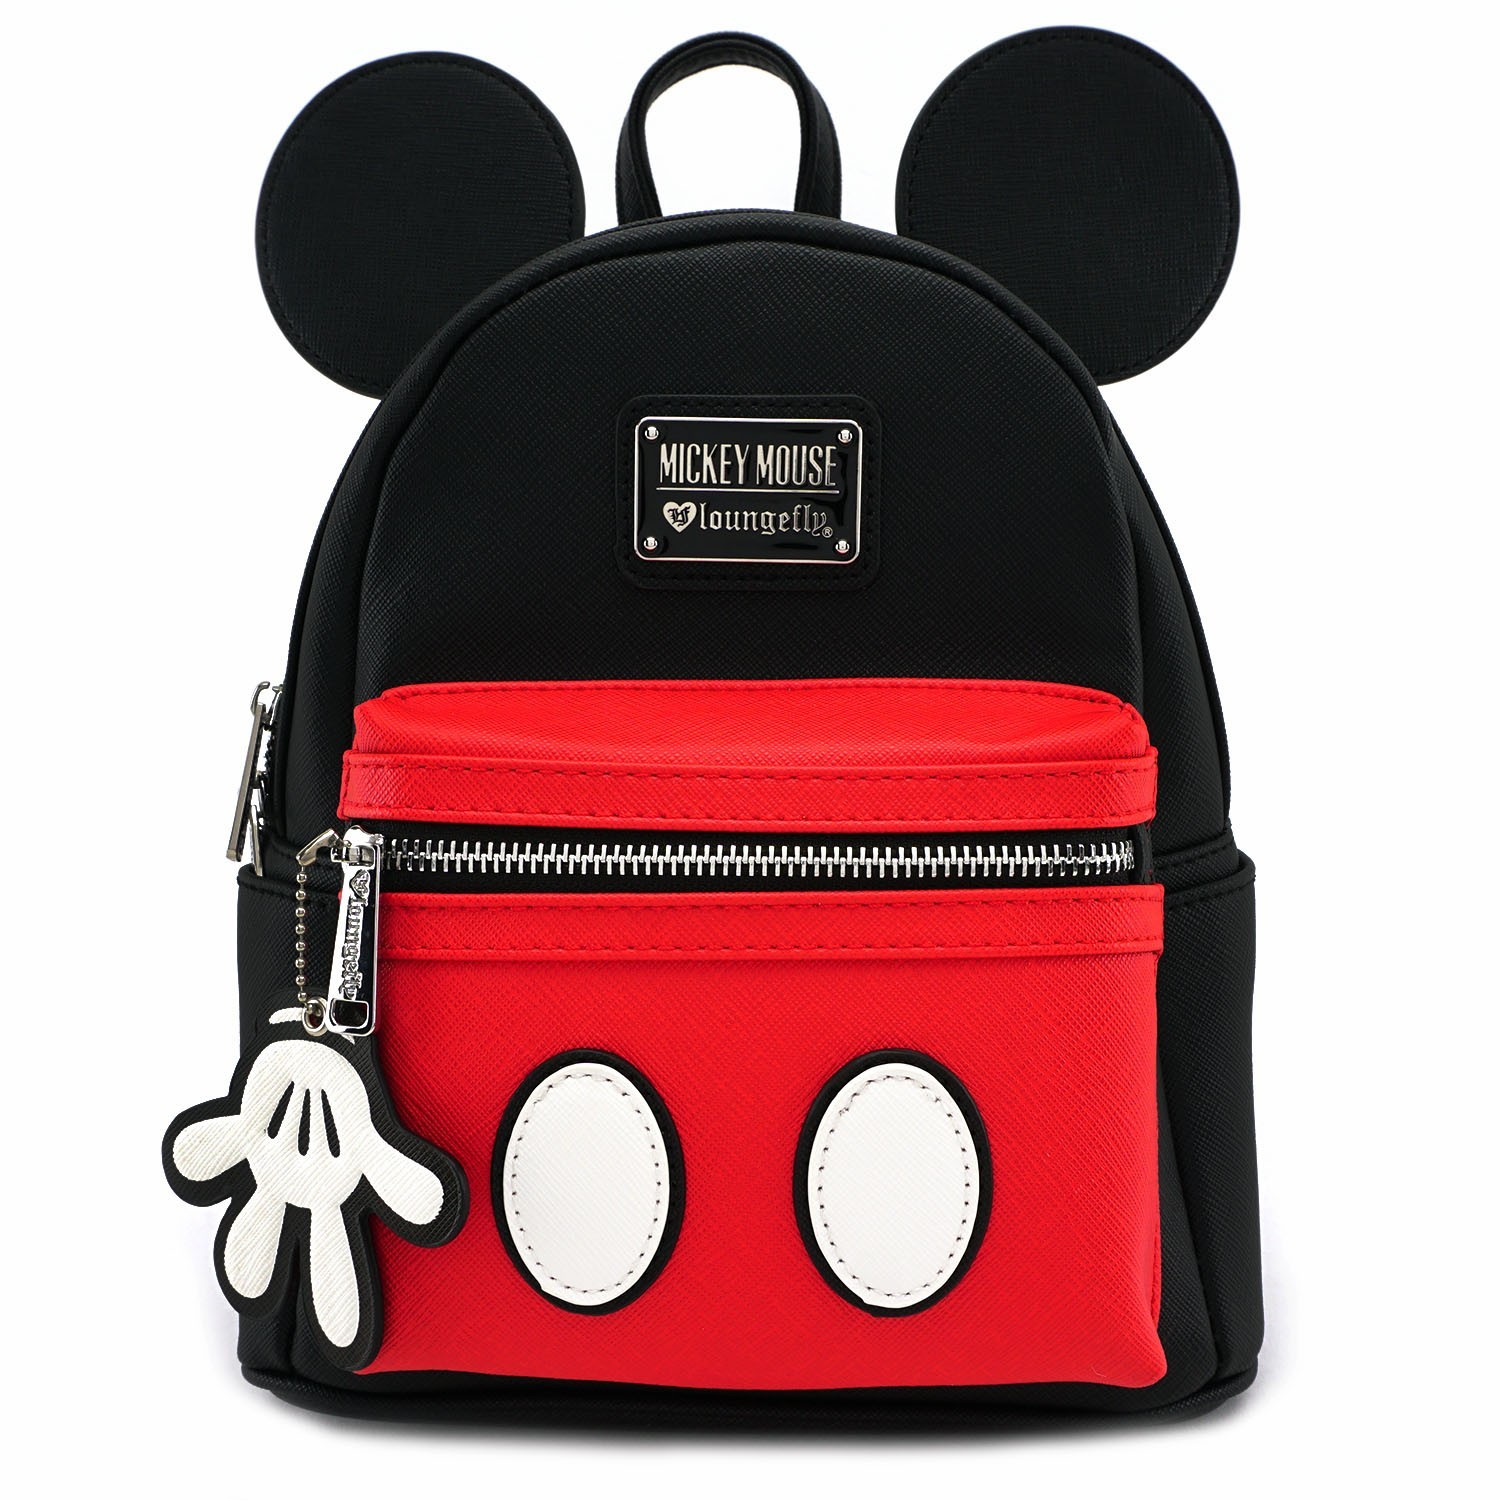 7d76885b1ad Loungefly  Disney Mickey Mouse - Cosplay Mini Backpack image ...